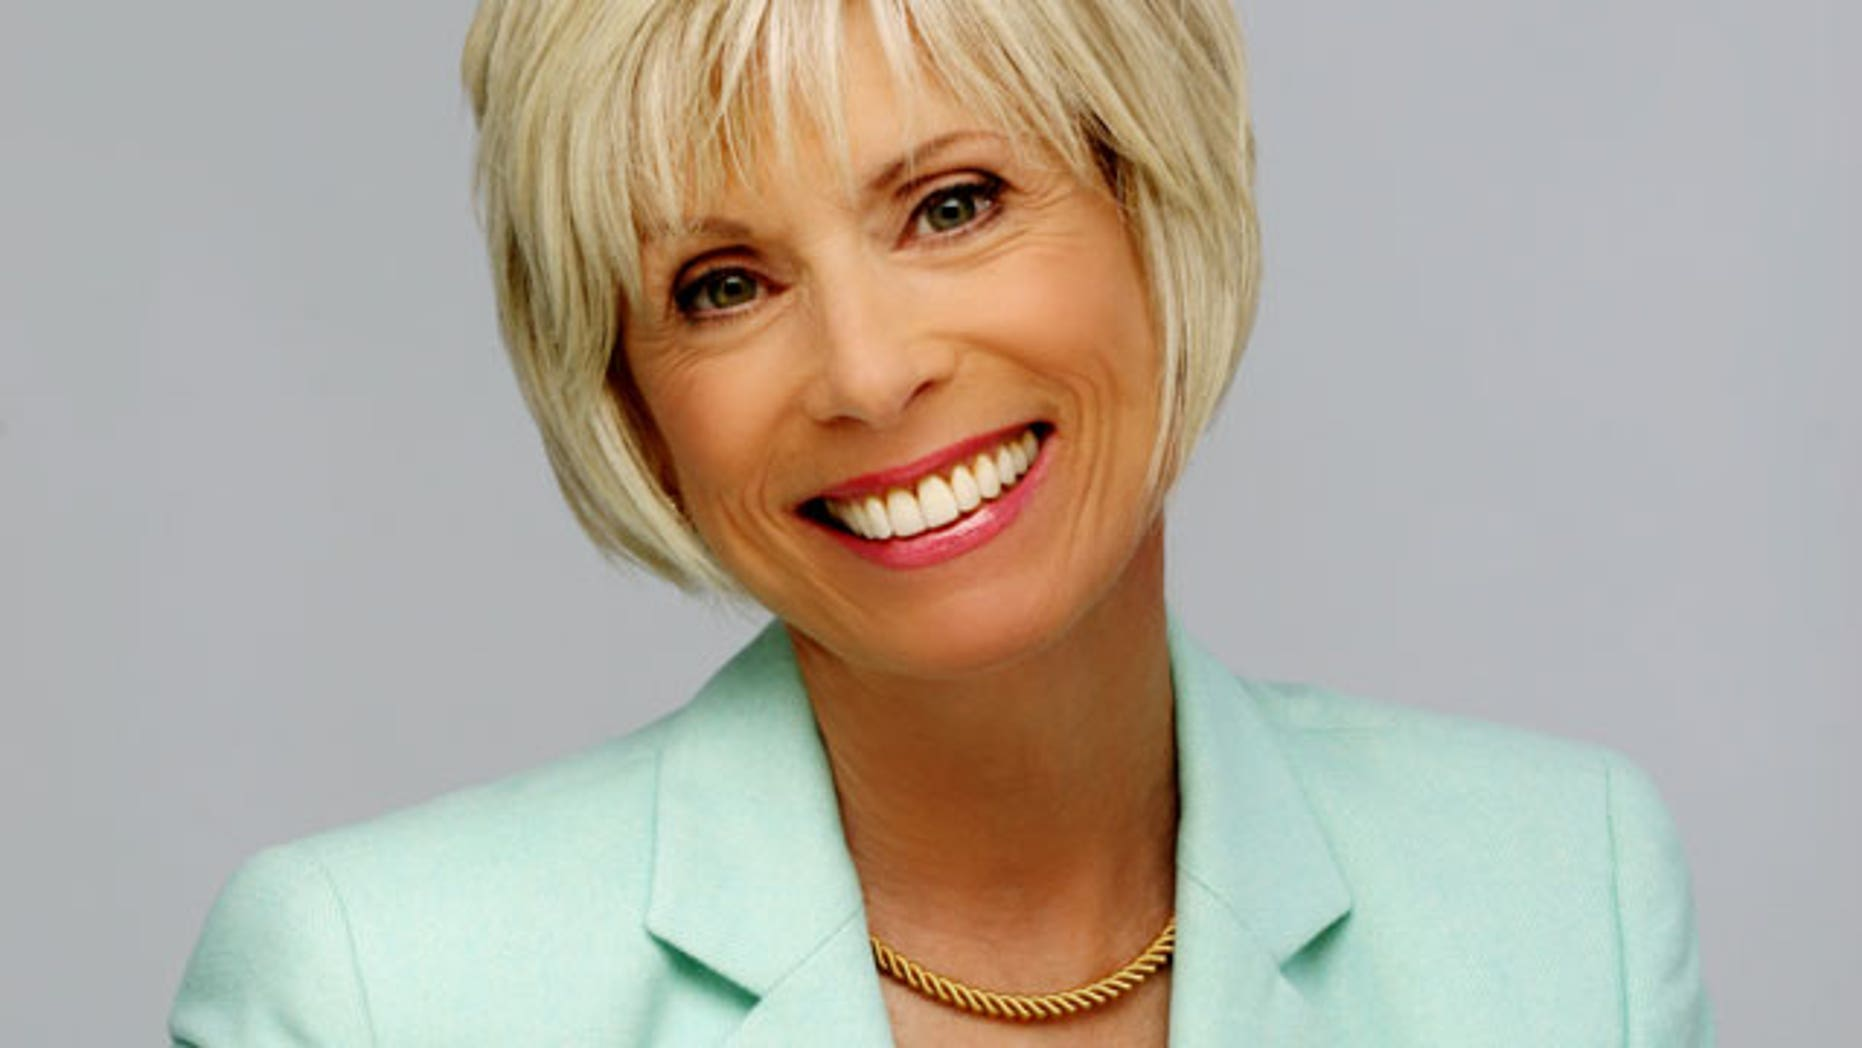 In this publicity image released by SIRIUS XM Radio, Talk show host Laura Schlessinger, also known as Dr. Laura, is shown.